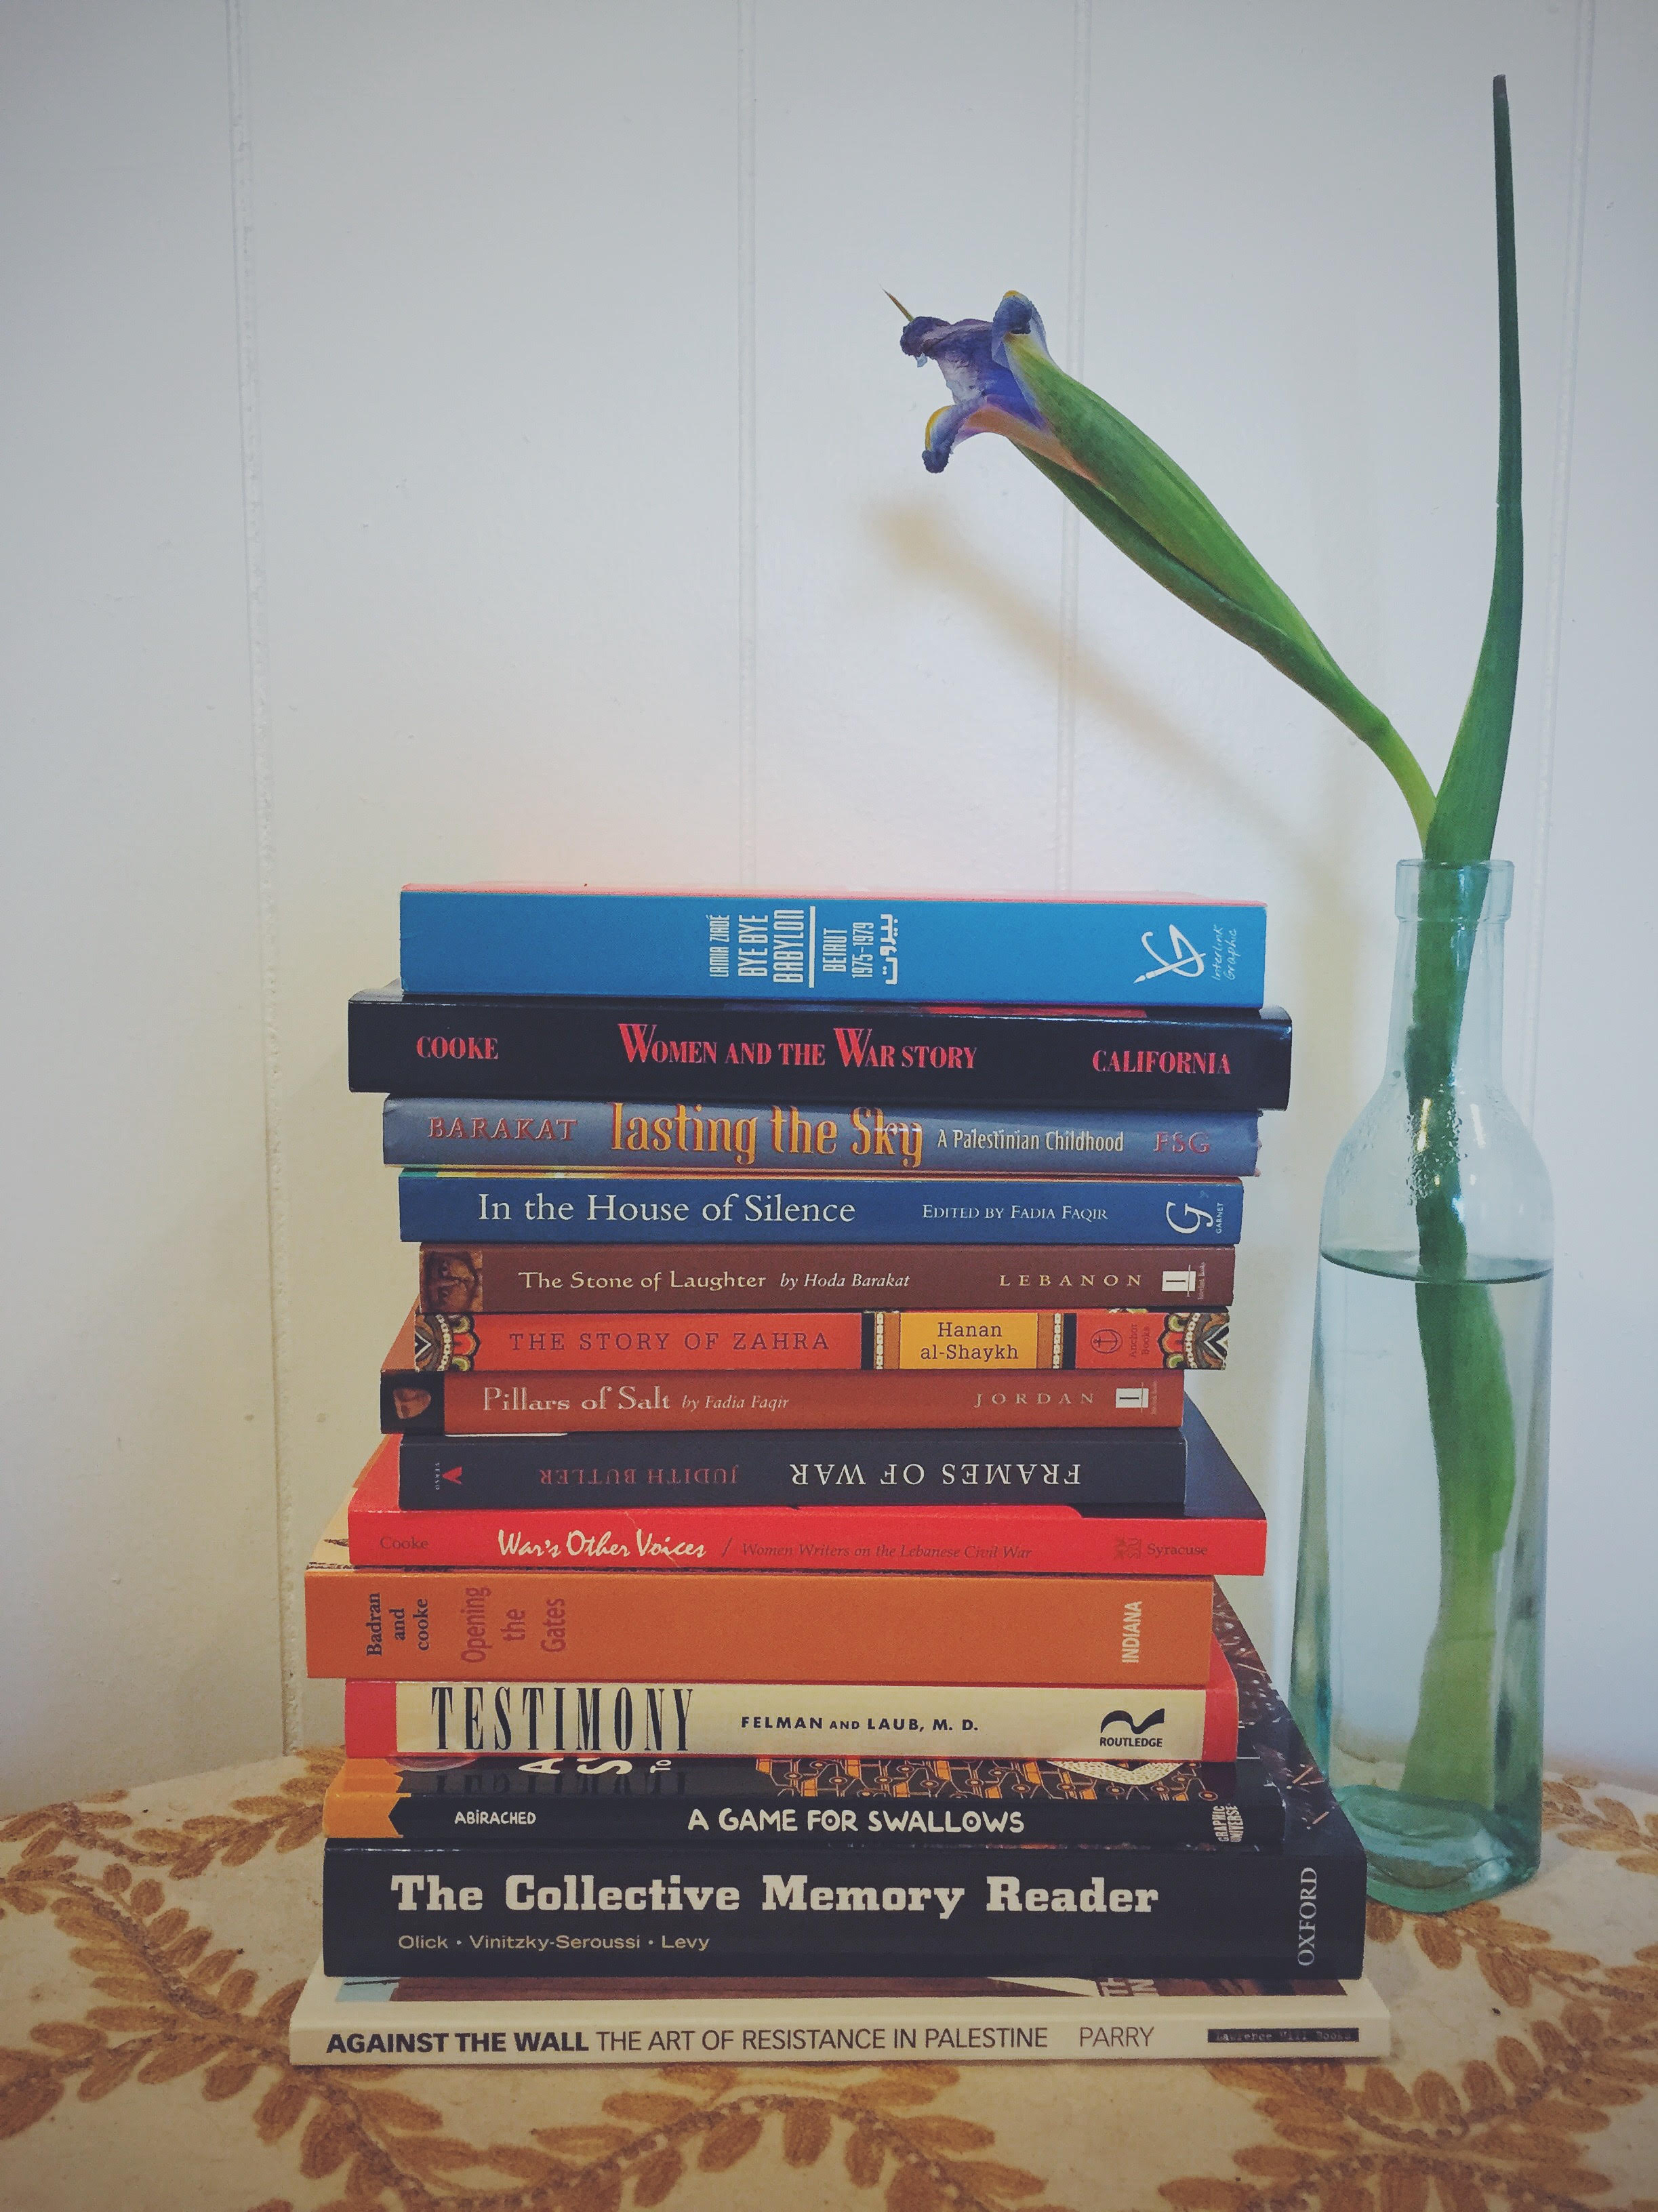 My ever-growing, leaning tower of thesis reading.